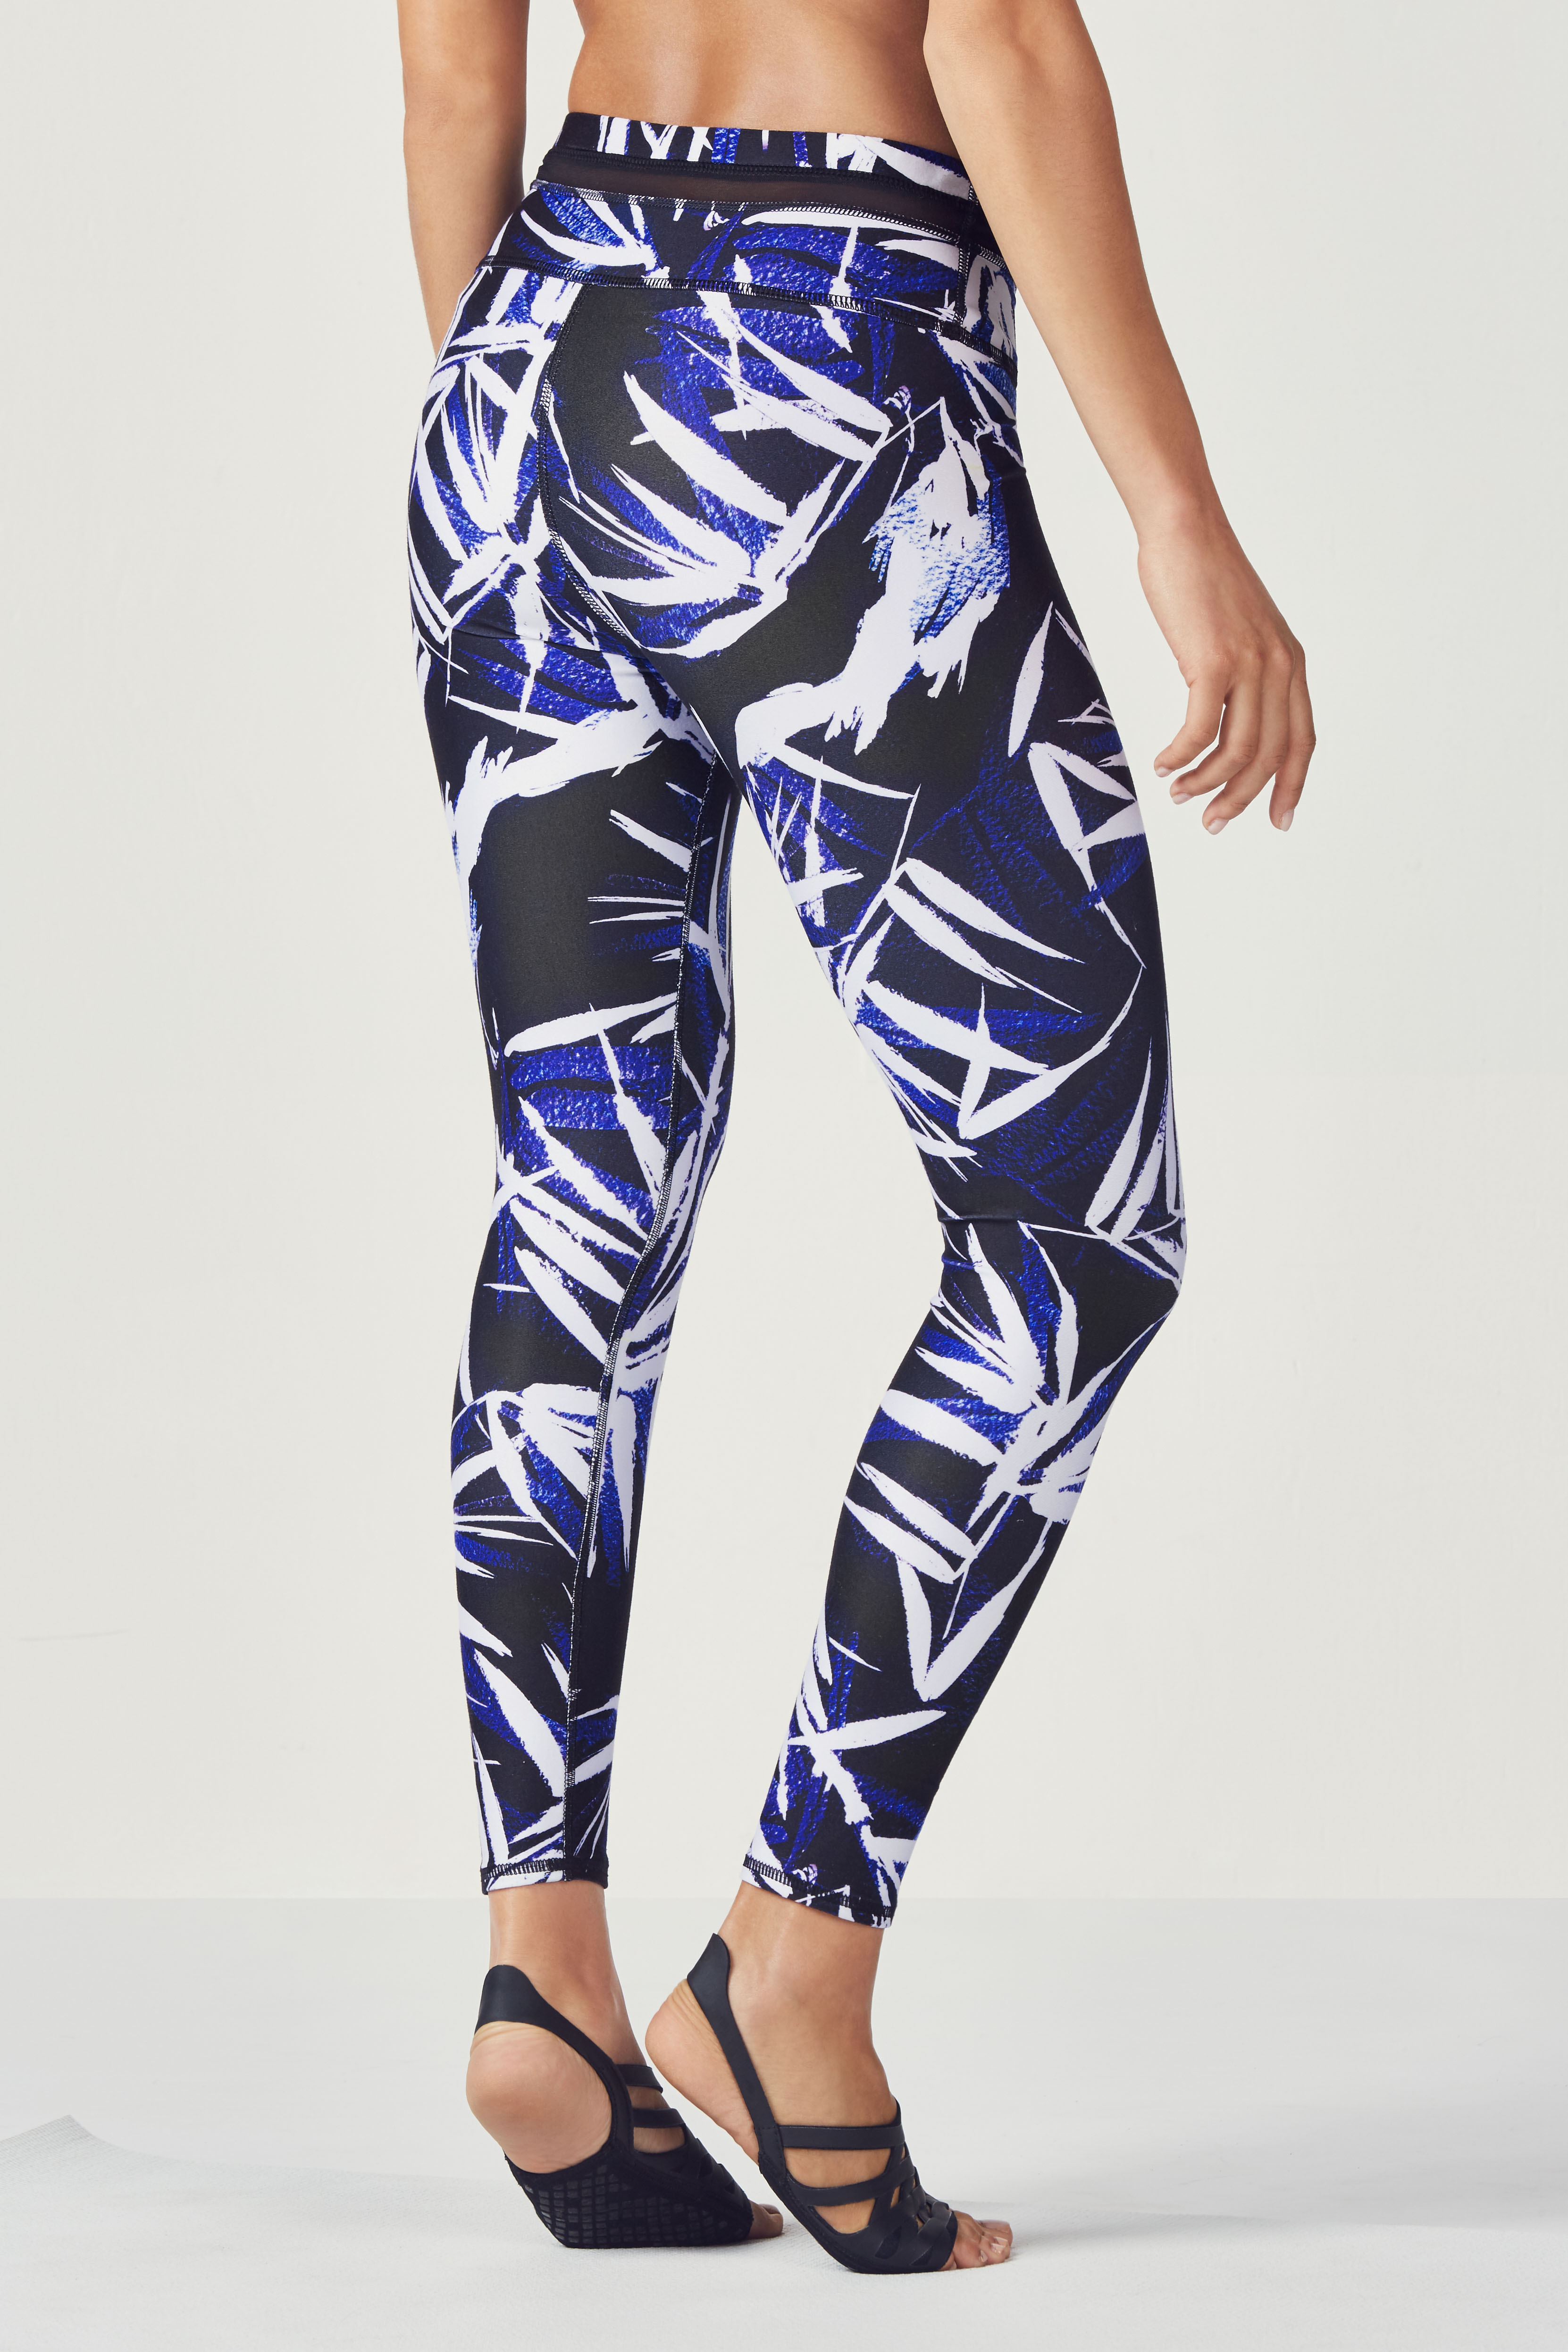 legging taille haute 7 8 darby en la palma print black v tements de sport fabletics. Black Bedroom Furniture Sets. Home Design Ideas